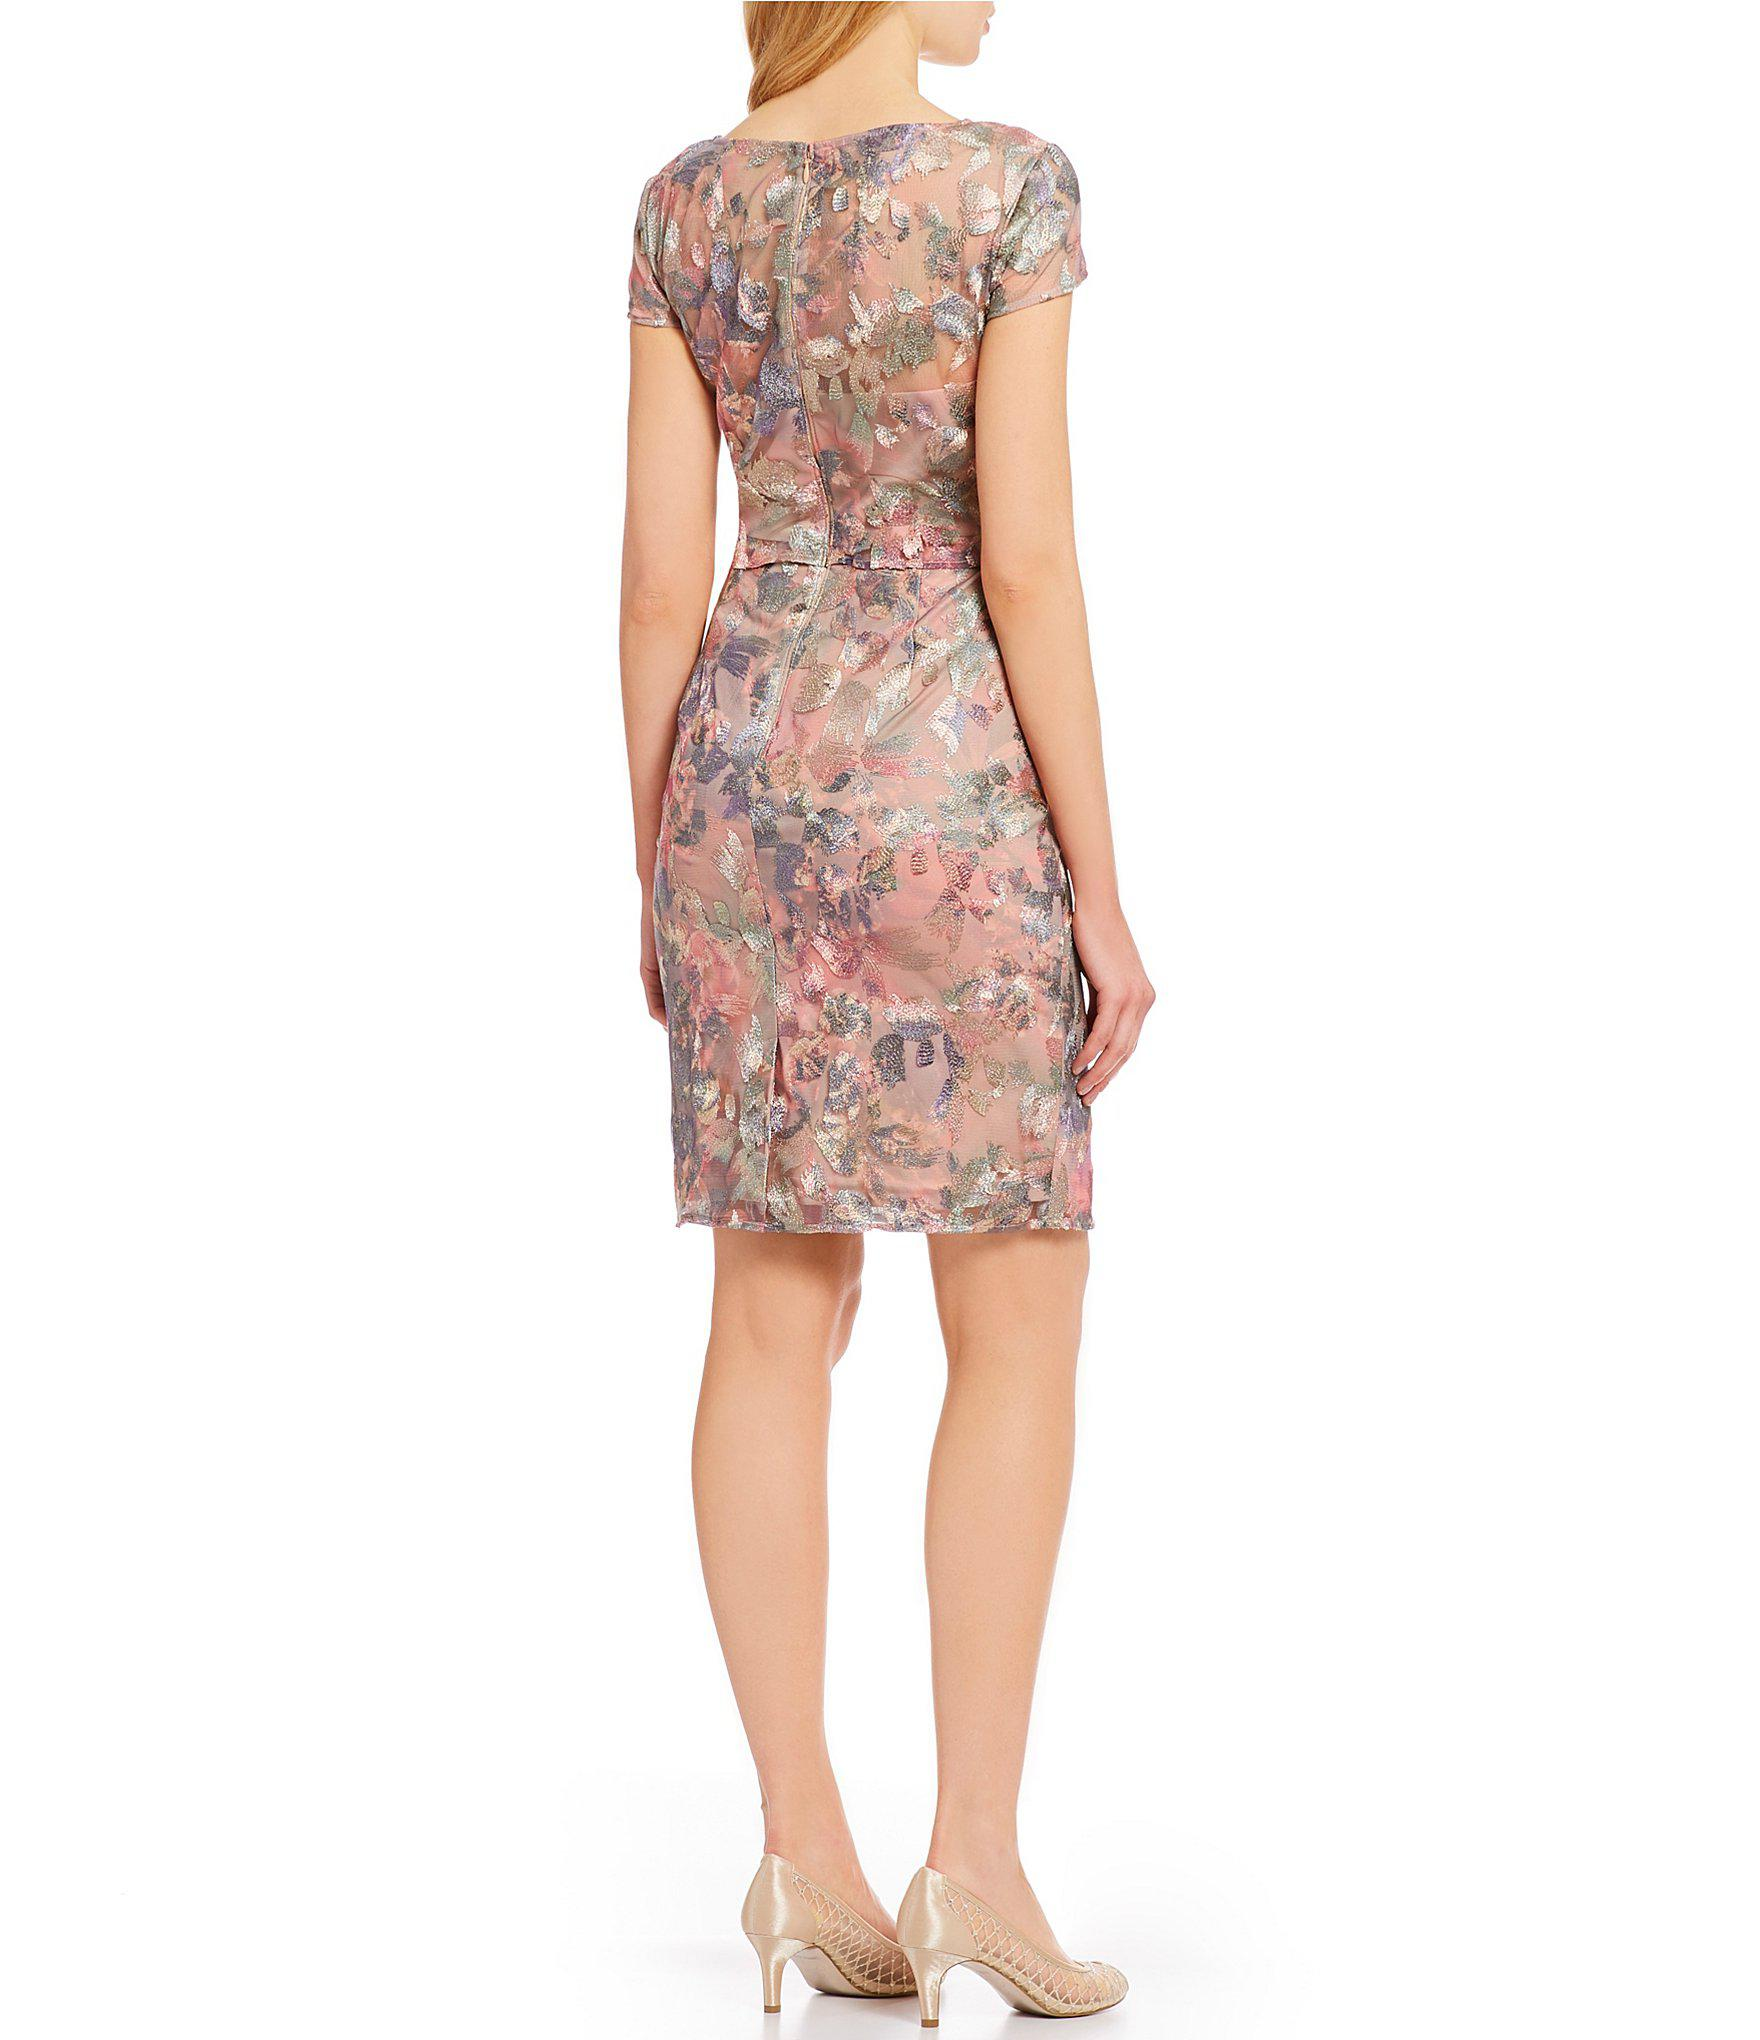 95c3a7af7c0 Adrianna Papell - Pink Metallic Floral Embroidered Popover Sheath Dress -  Lyst. View fullscreen